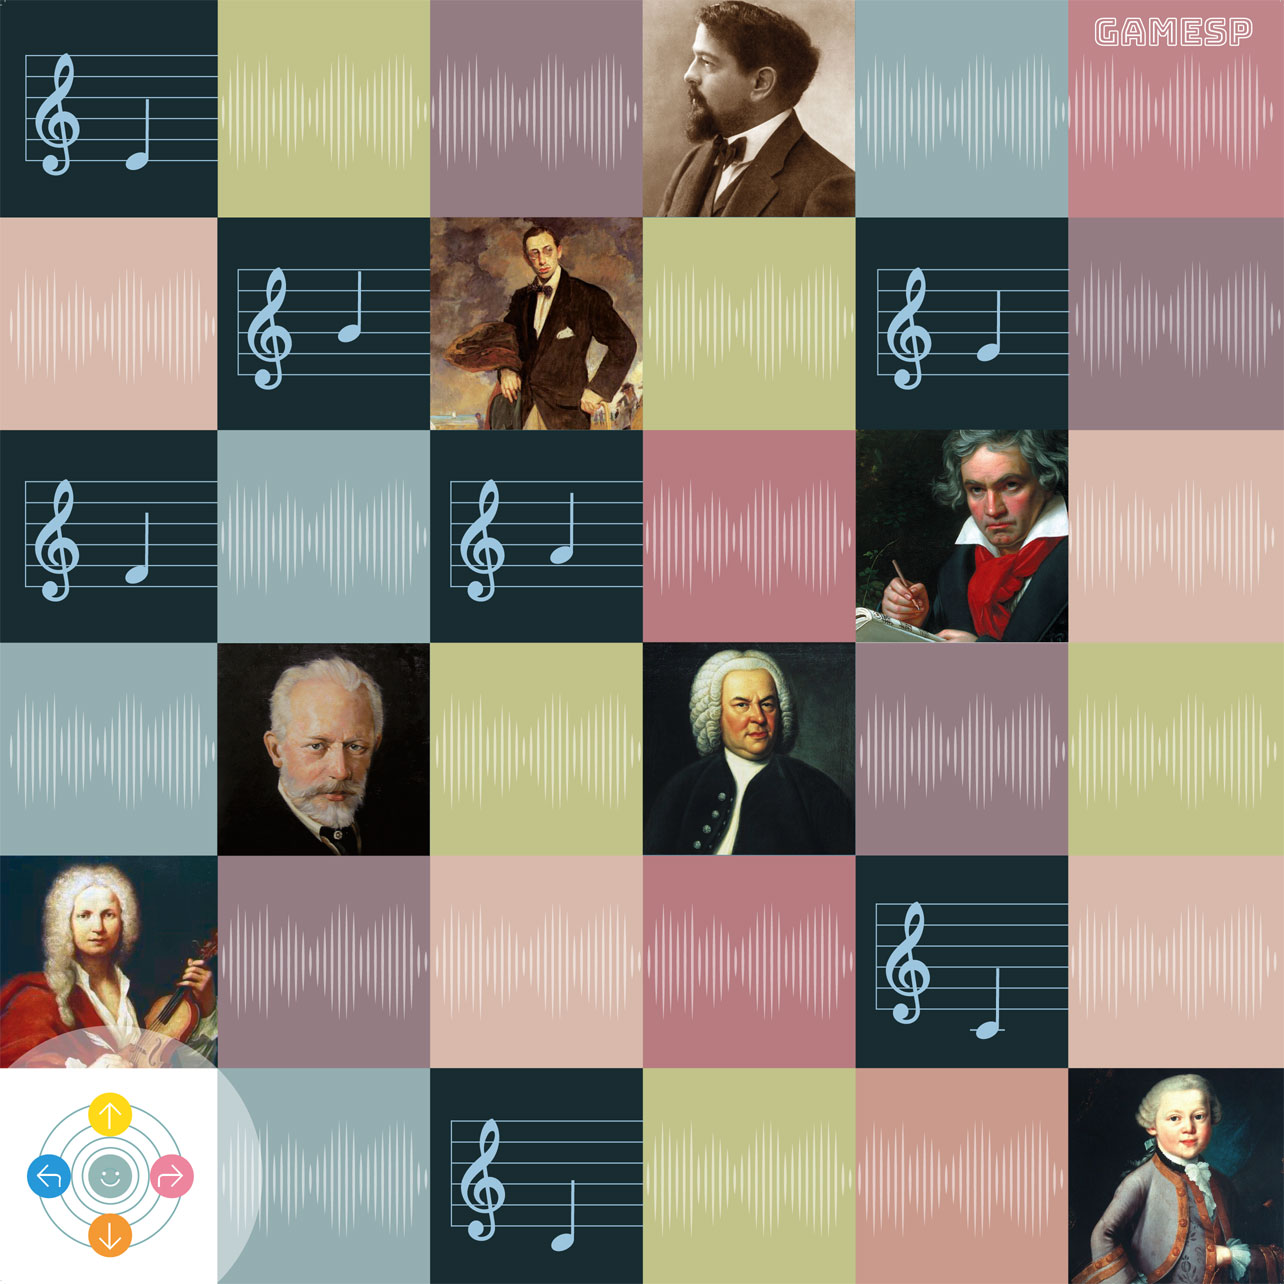 Music notation board